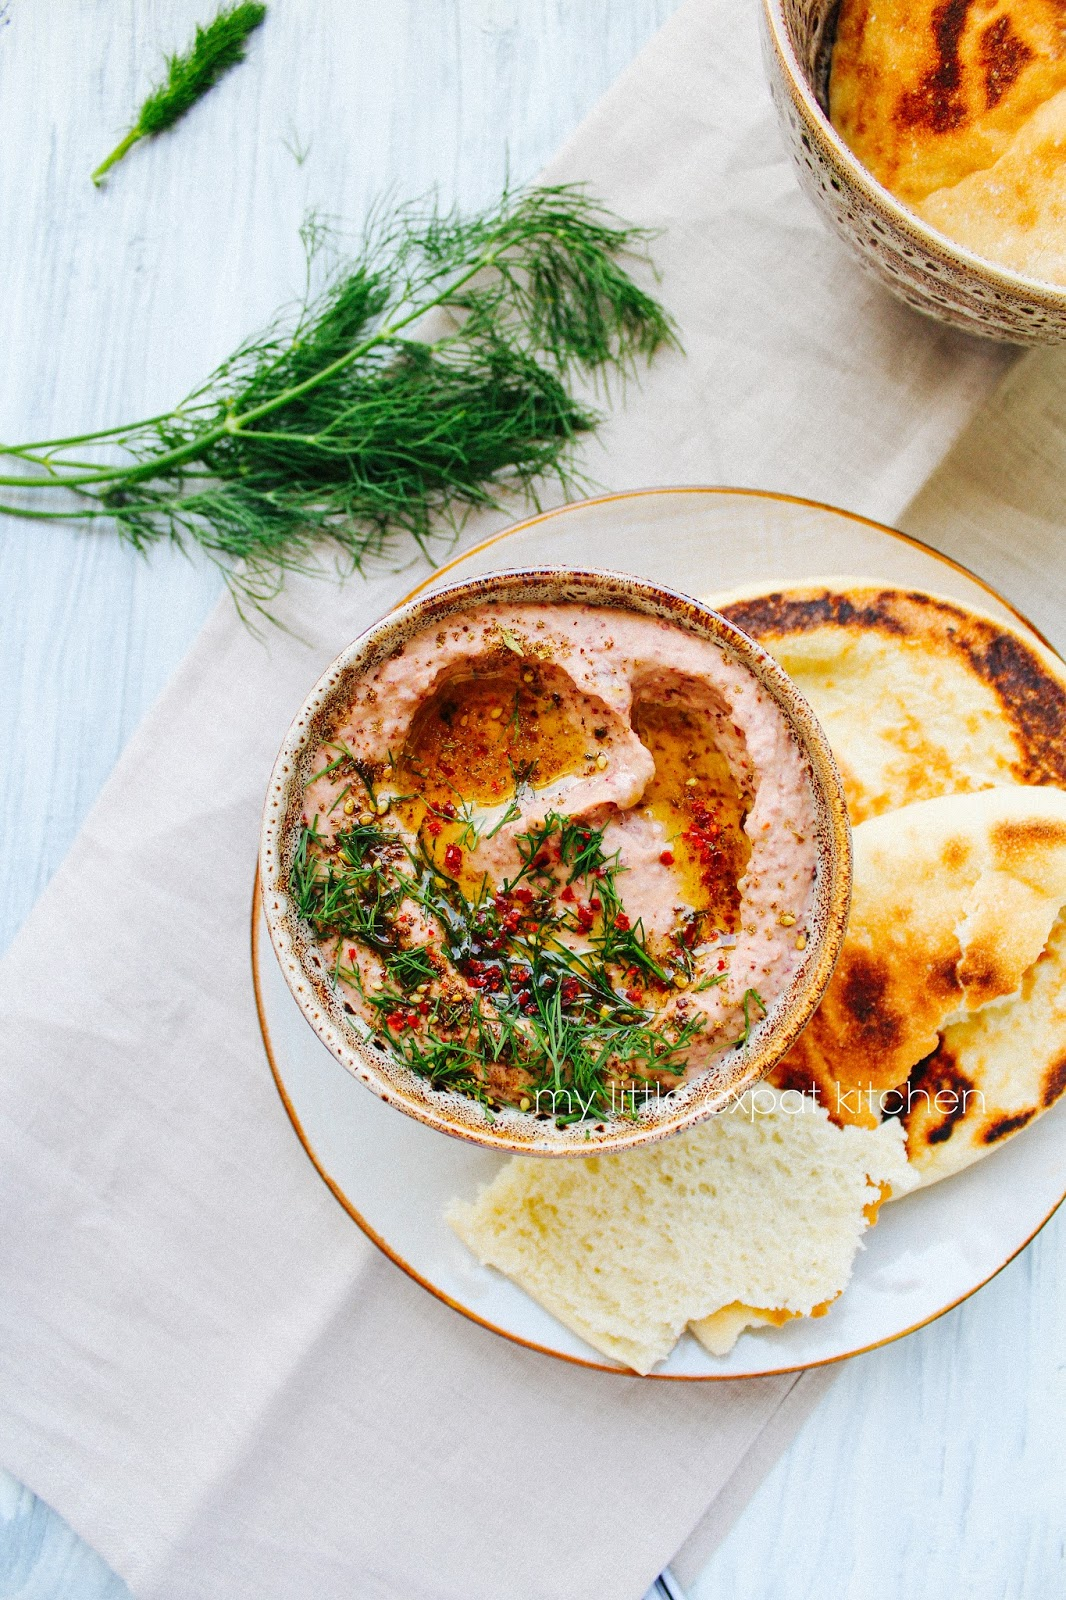 My Little Expat Kitchen Spicy Red Kidney Bean Dip With Za Atar